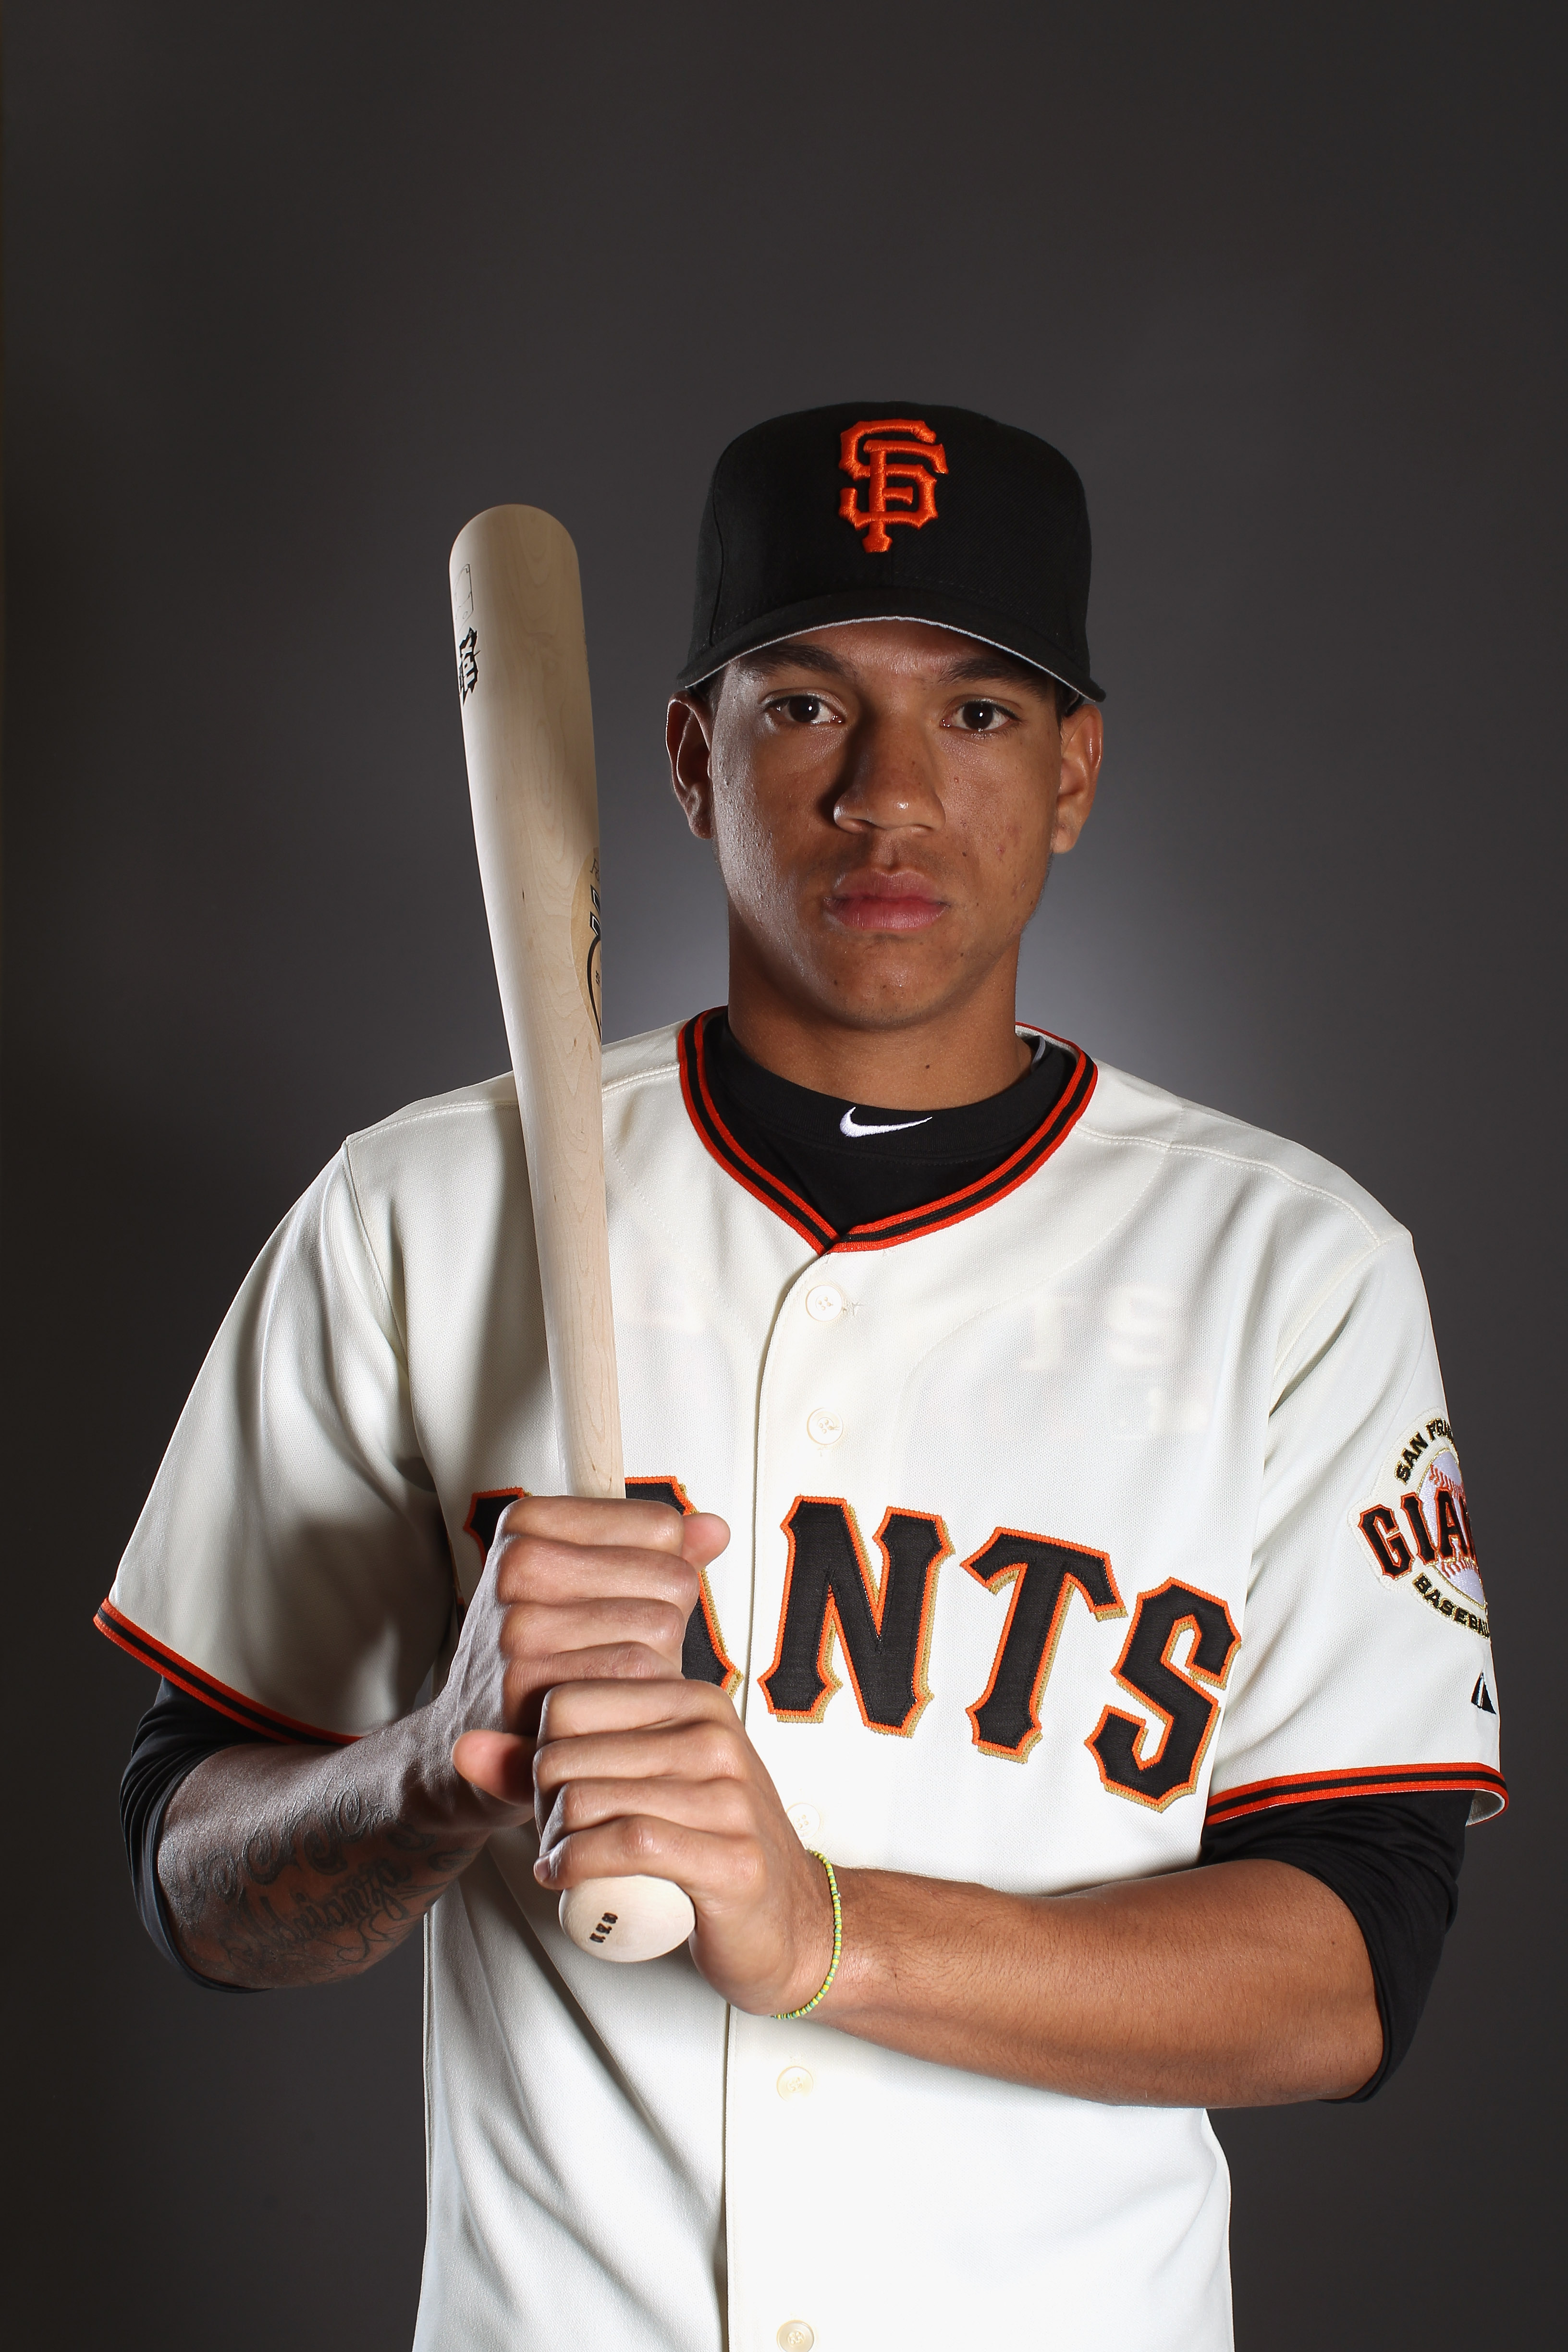 SCOTTSDALE, AZ - FEBRUARY 23:  Ehire Adrianza #78 of the San Francisco Giants poses for a portrait during media photo day at Scottsdale Stadium on February 23, 2011 in Scottsdale, Arizona.  (Photo by Ezra Shaw/Getty Images)